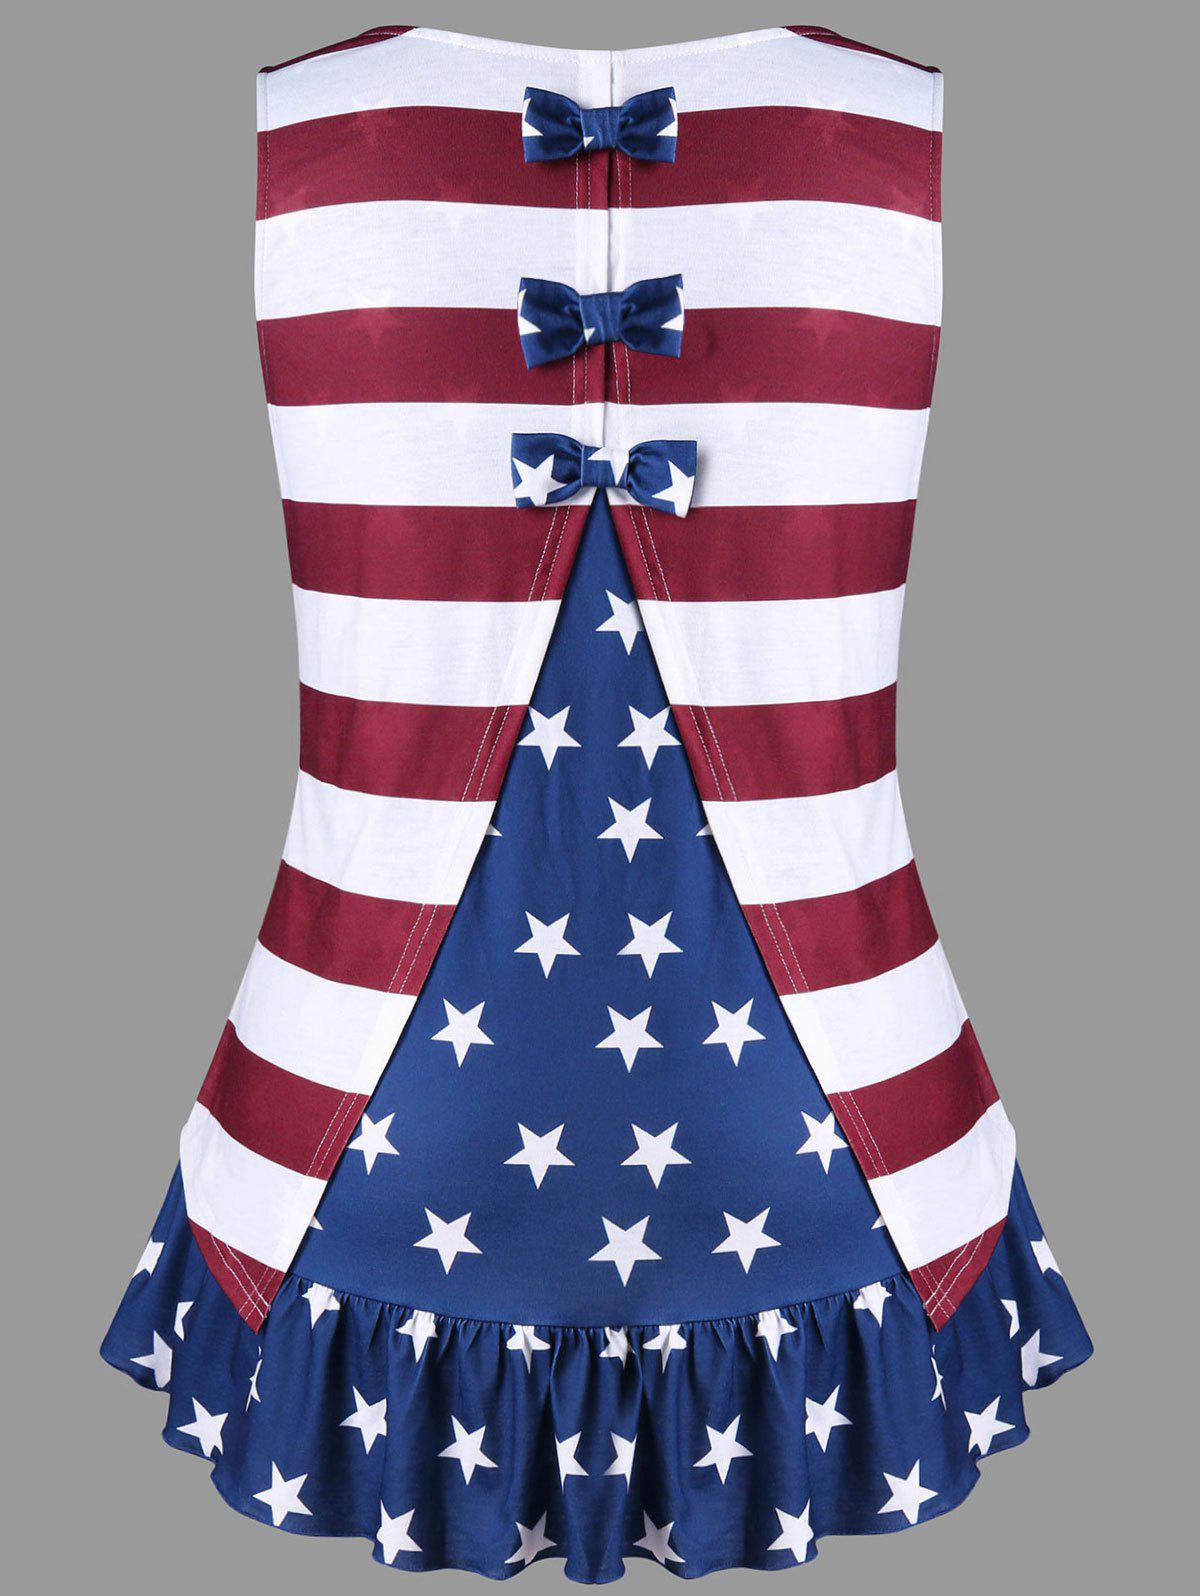 Plus Size Flounced Bowknot Embellished Patriotic Tank Top side bowknot embellished plus size sweatshirts page 7